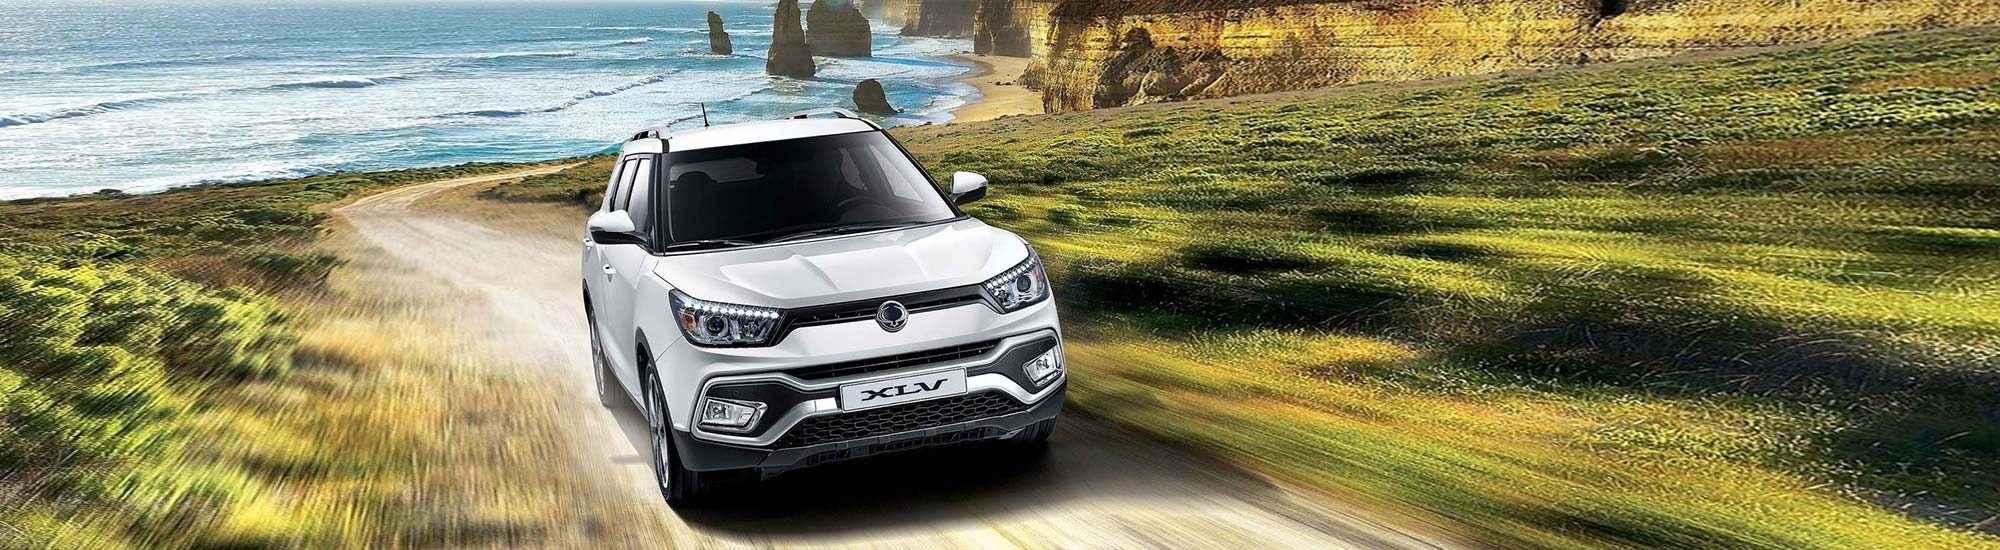 SsangYong Tivoli XLV Contract Hire